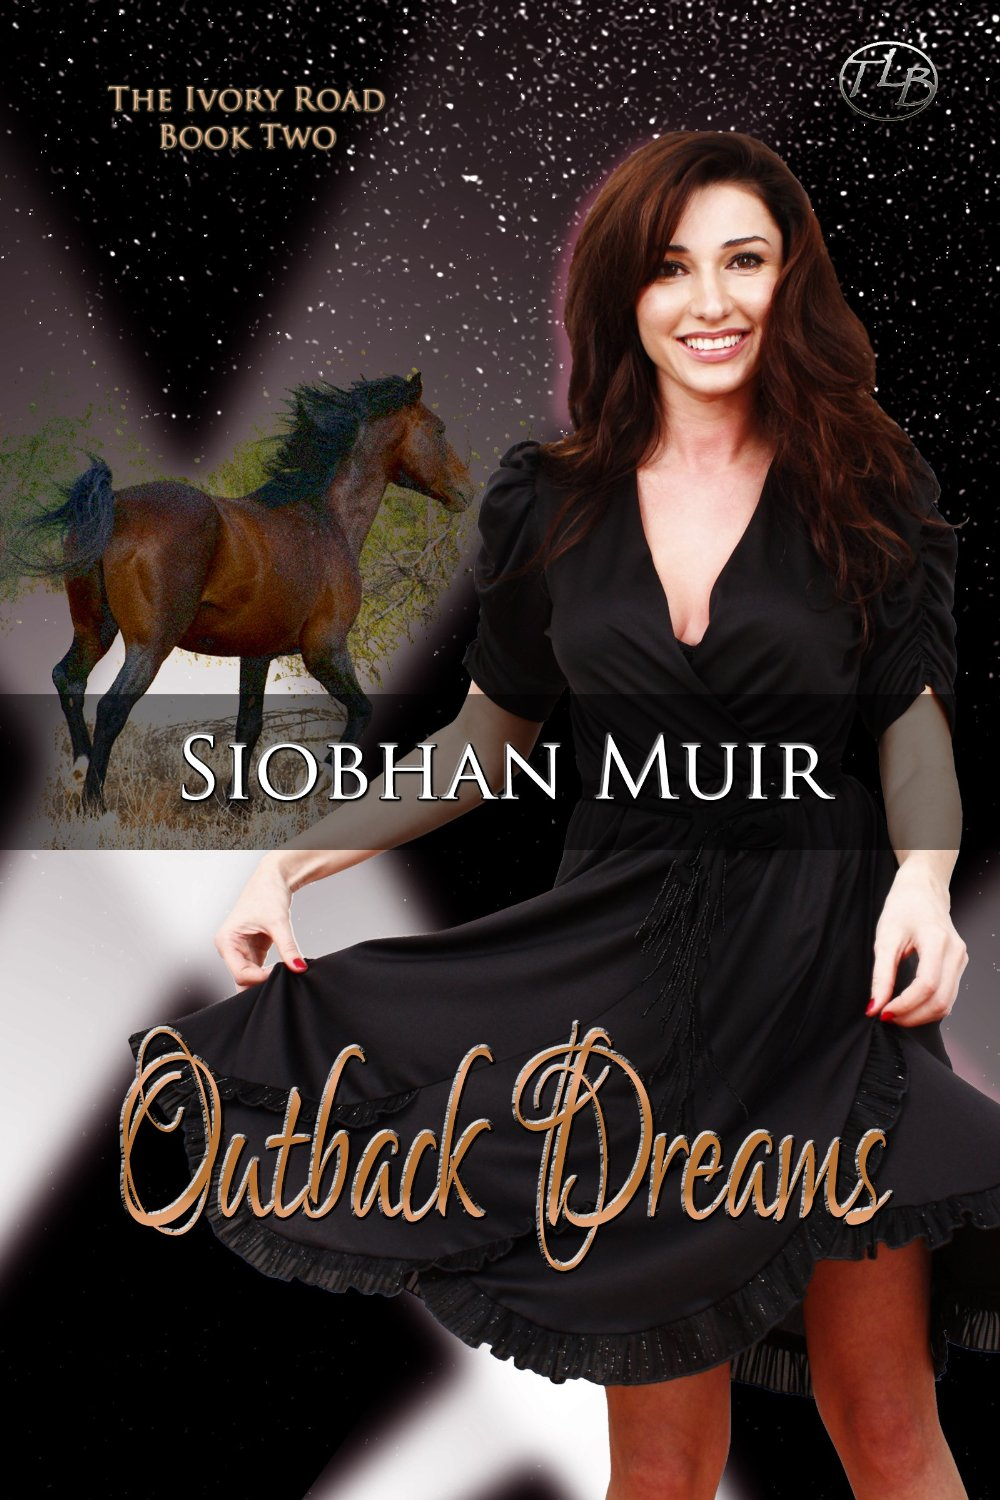 Outback Dreams by Siobhan Muir review by Wendy Strain